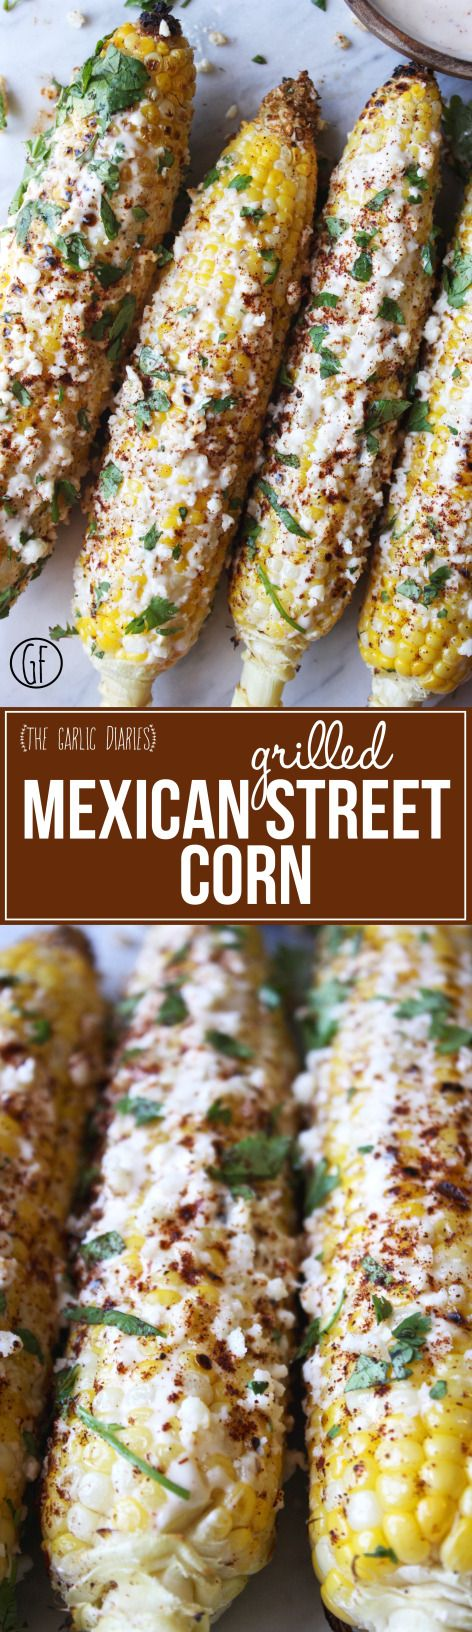 Mexican style street corn elotes street corn mexican style and mexican style street corn elotes street corn mexican style and mexicans forumfinder Choice Image